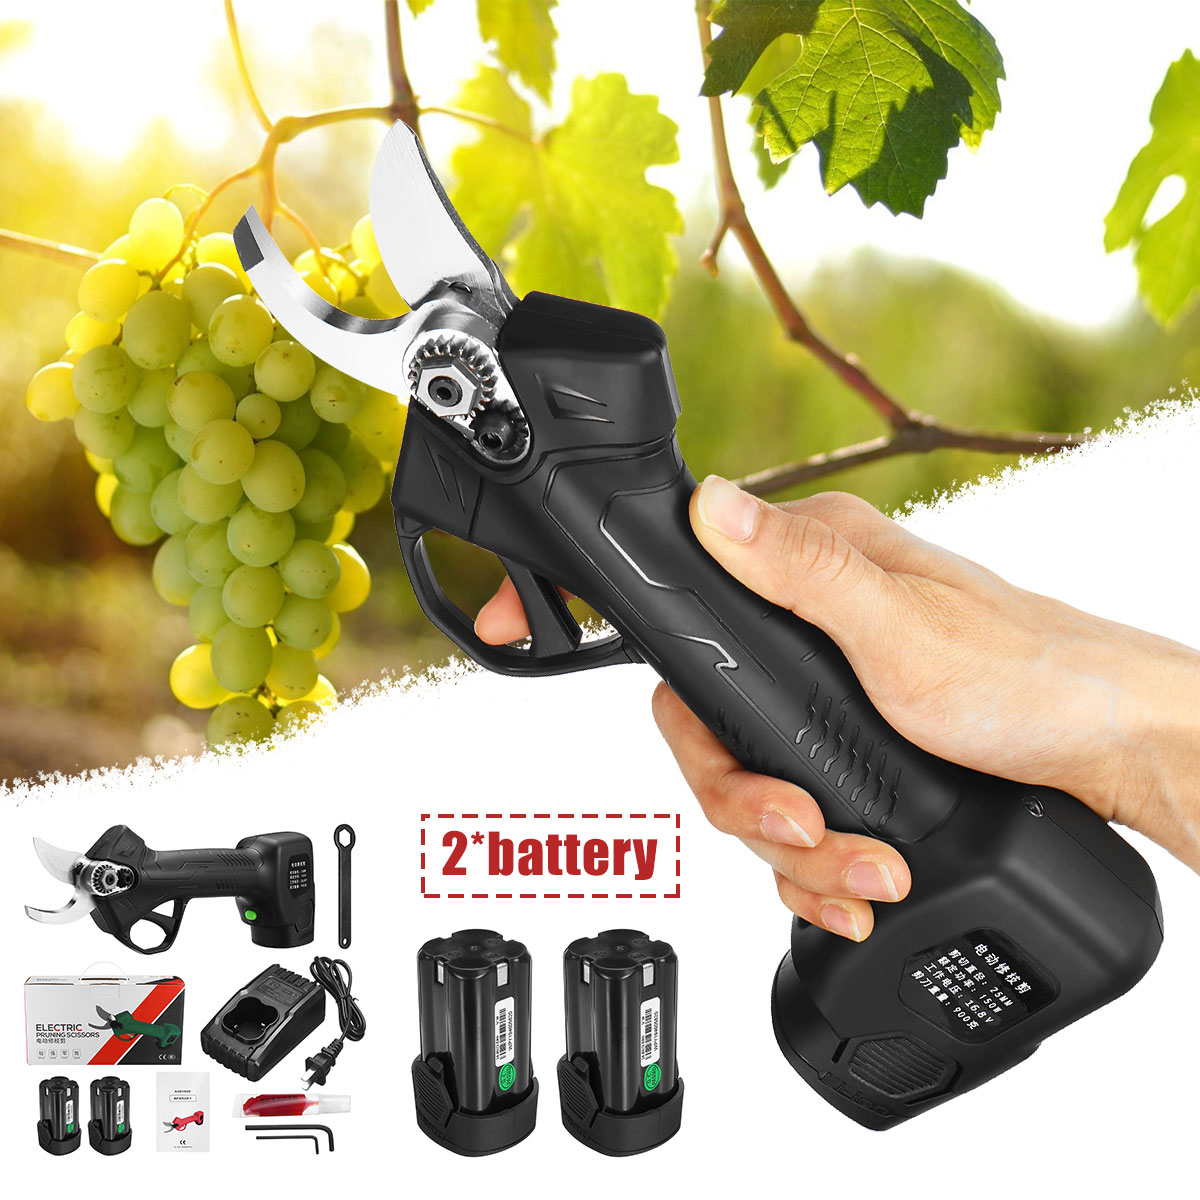 16.8V Rechargeable Electric Pruning Scissors Cordless Pruning Shear Garden Pruner Secateur Branch Cutting Tool With 2 X Battery